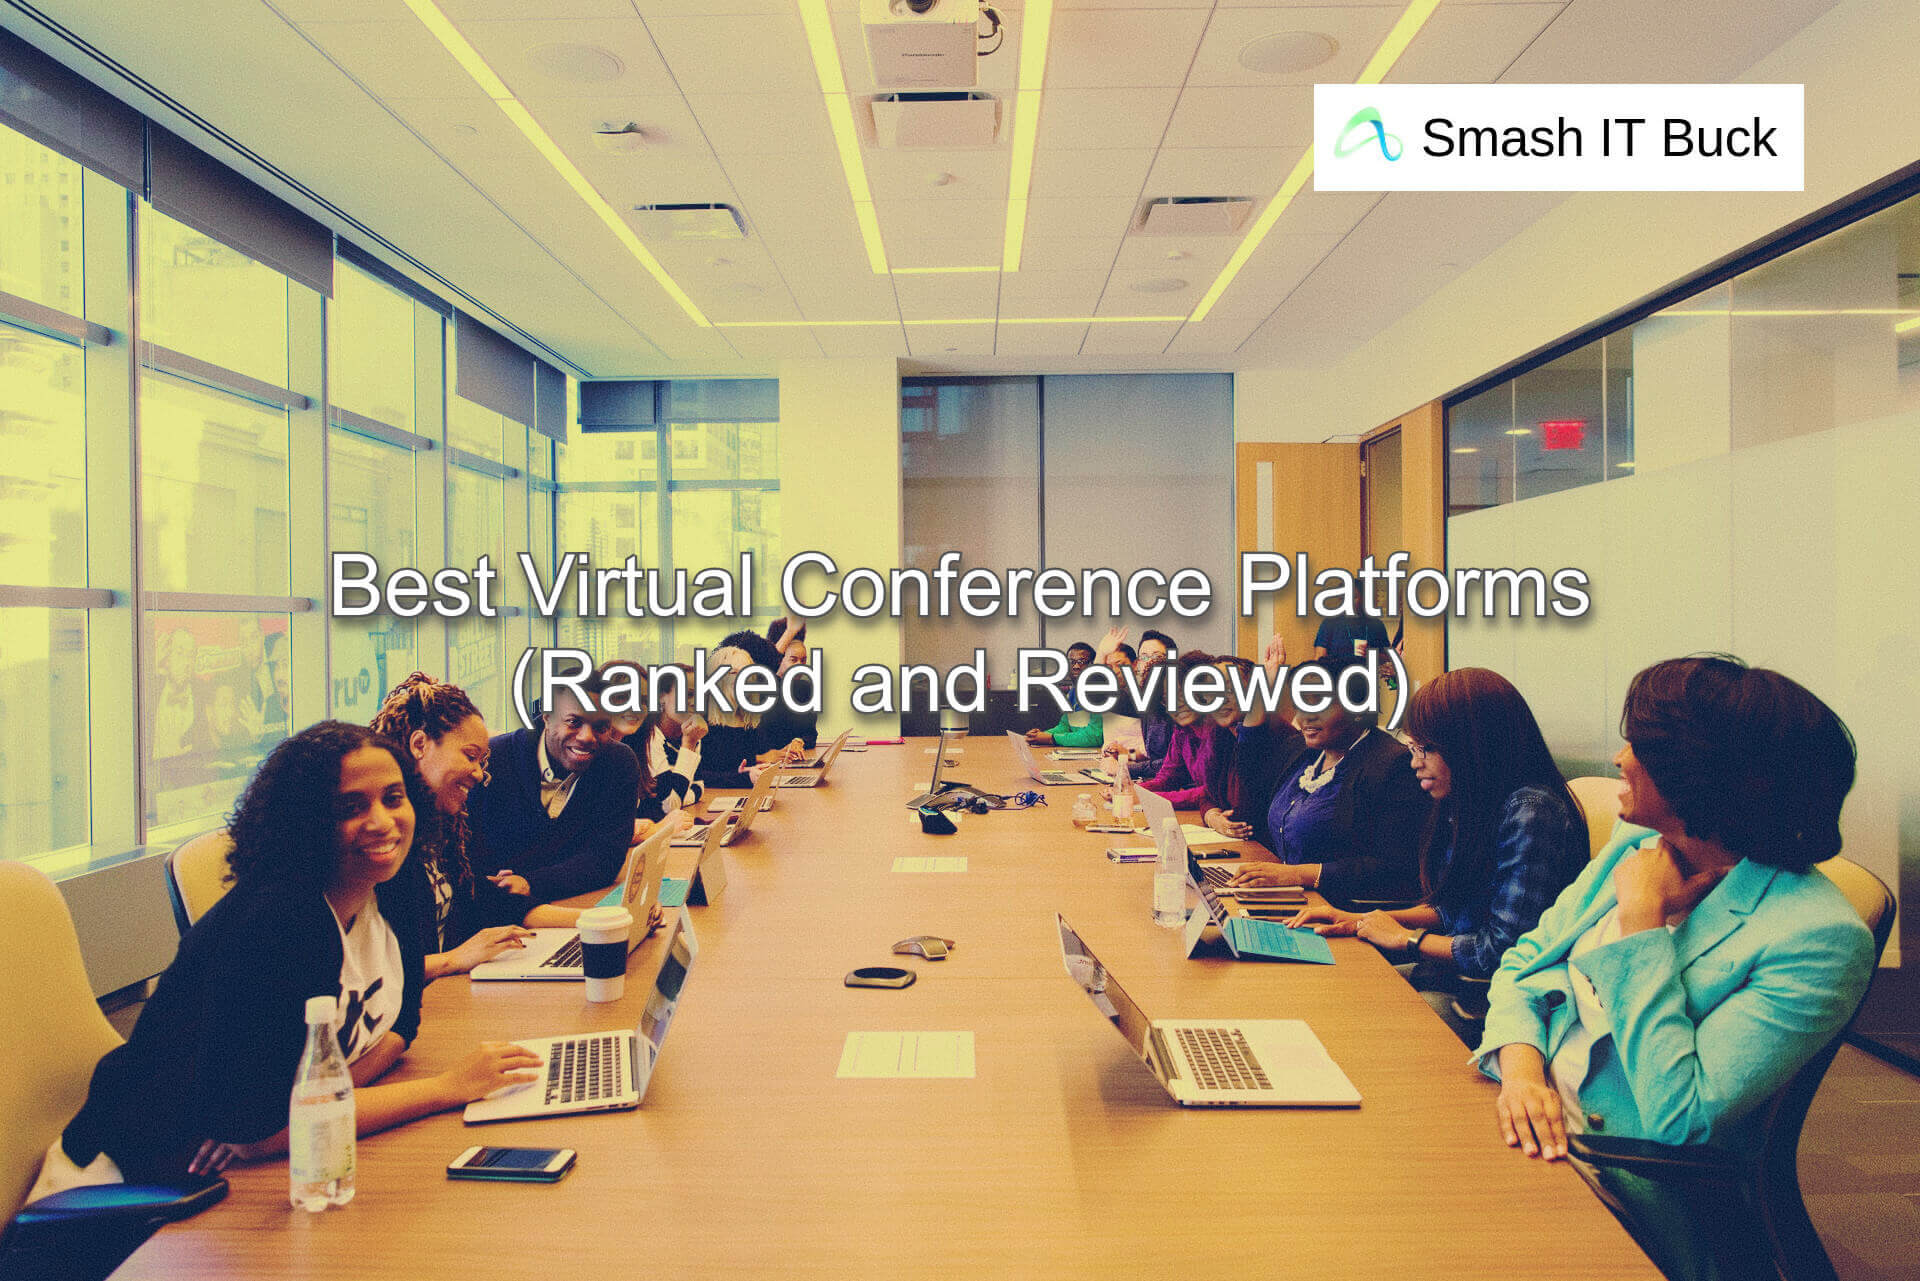 Best Virtual Conference Platforms to use in 2021